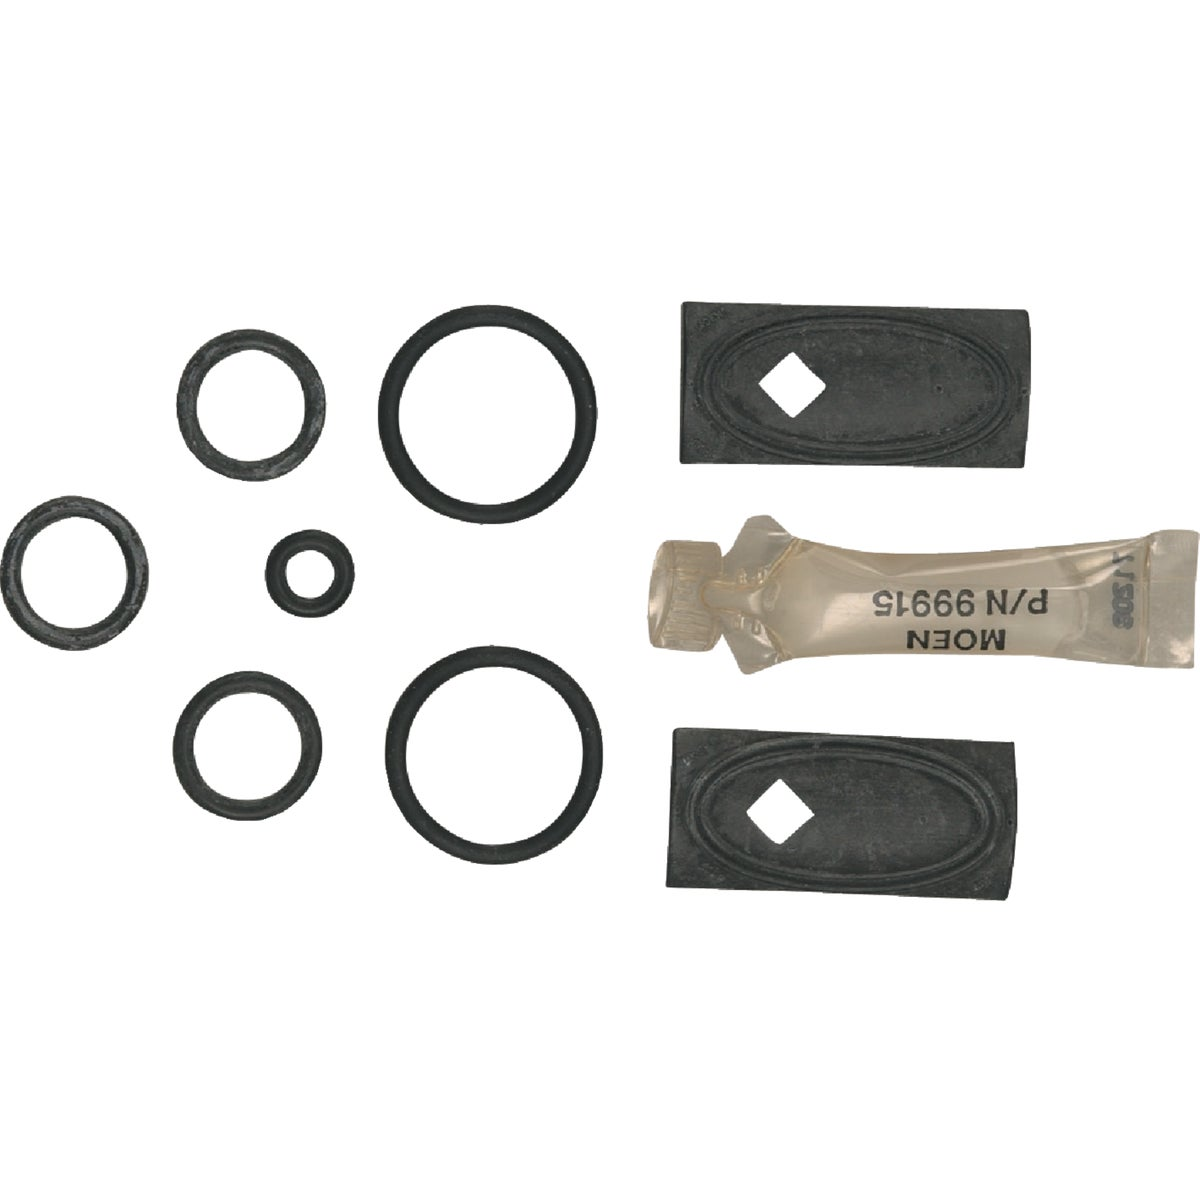 POSI-TEMP REPAIR KIT